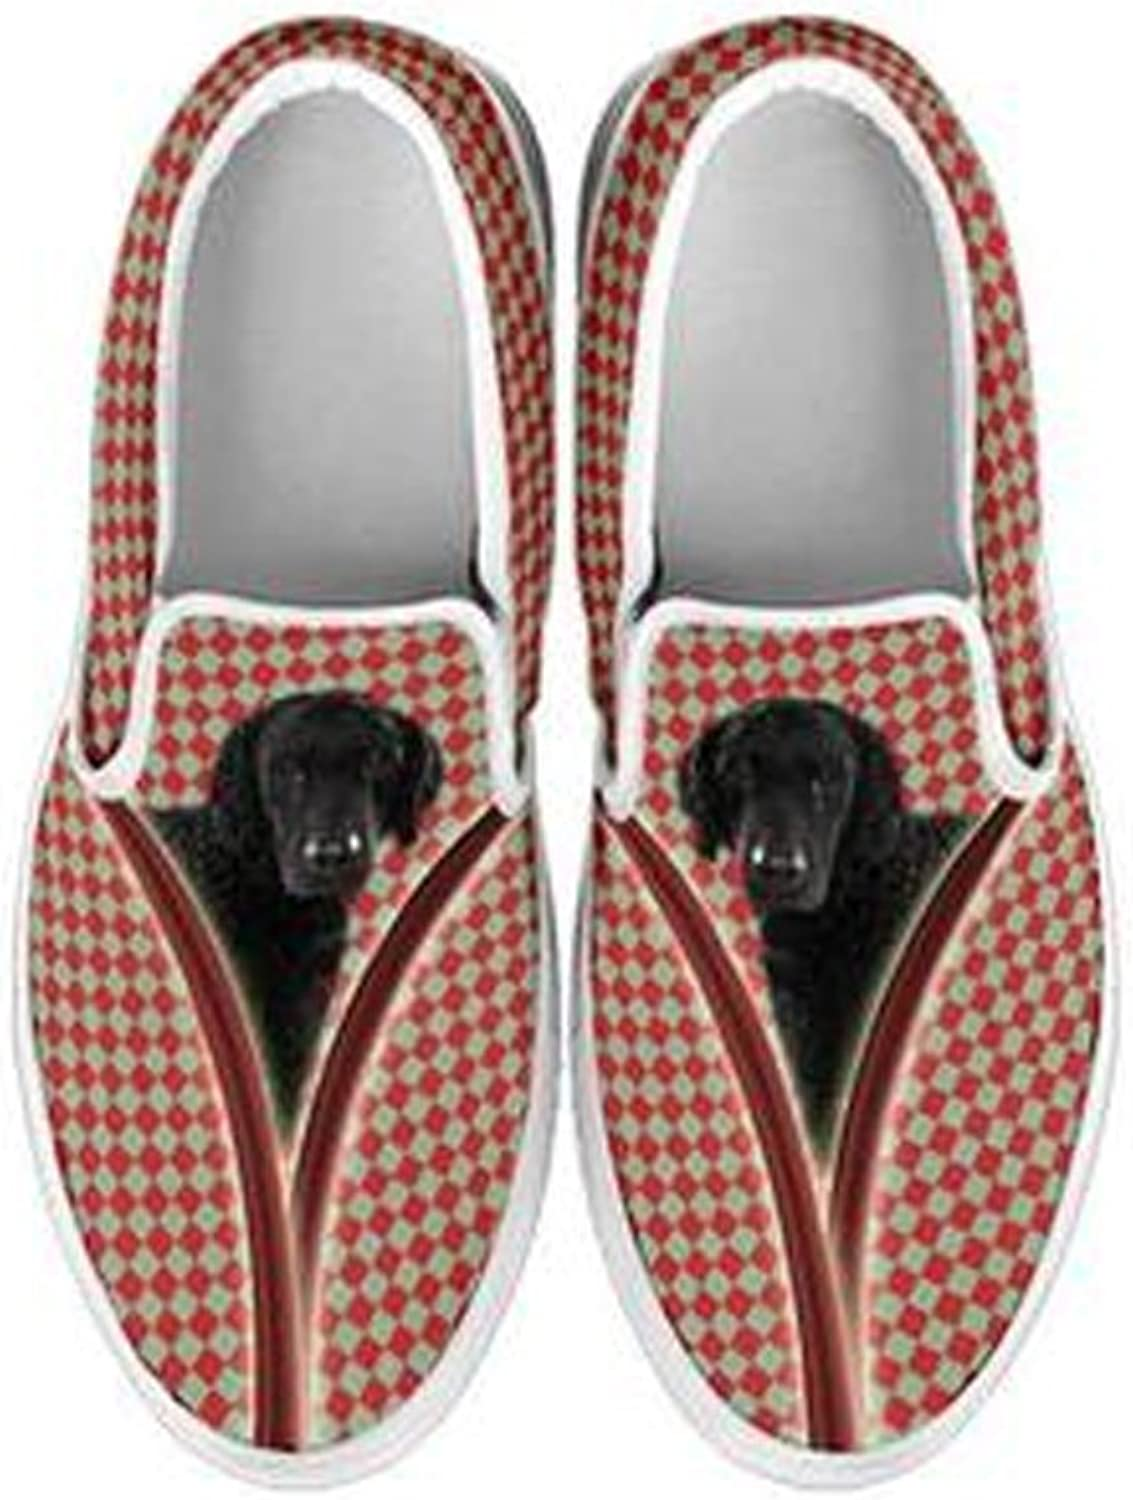 shoestup Women's Slip Ons-Cute Dogs Print Slip Ons shoes for Women (Choose Your Breed) White